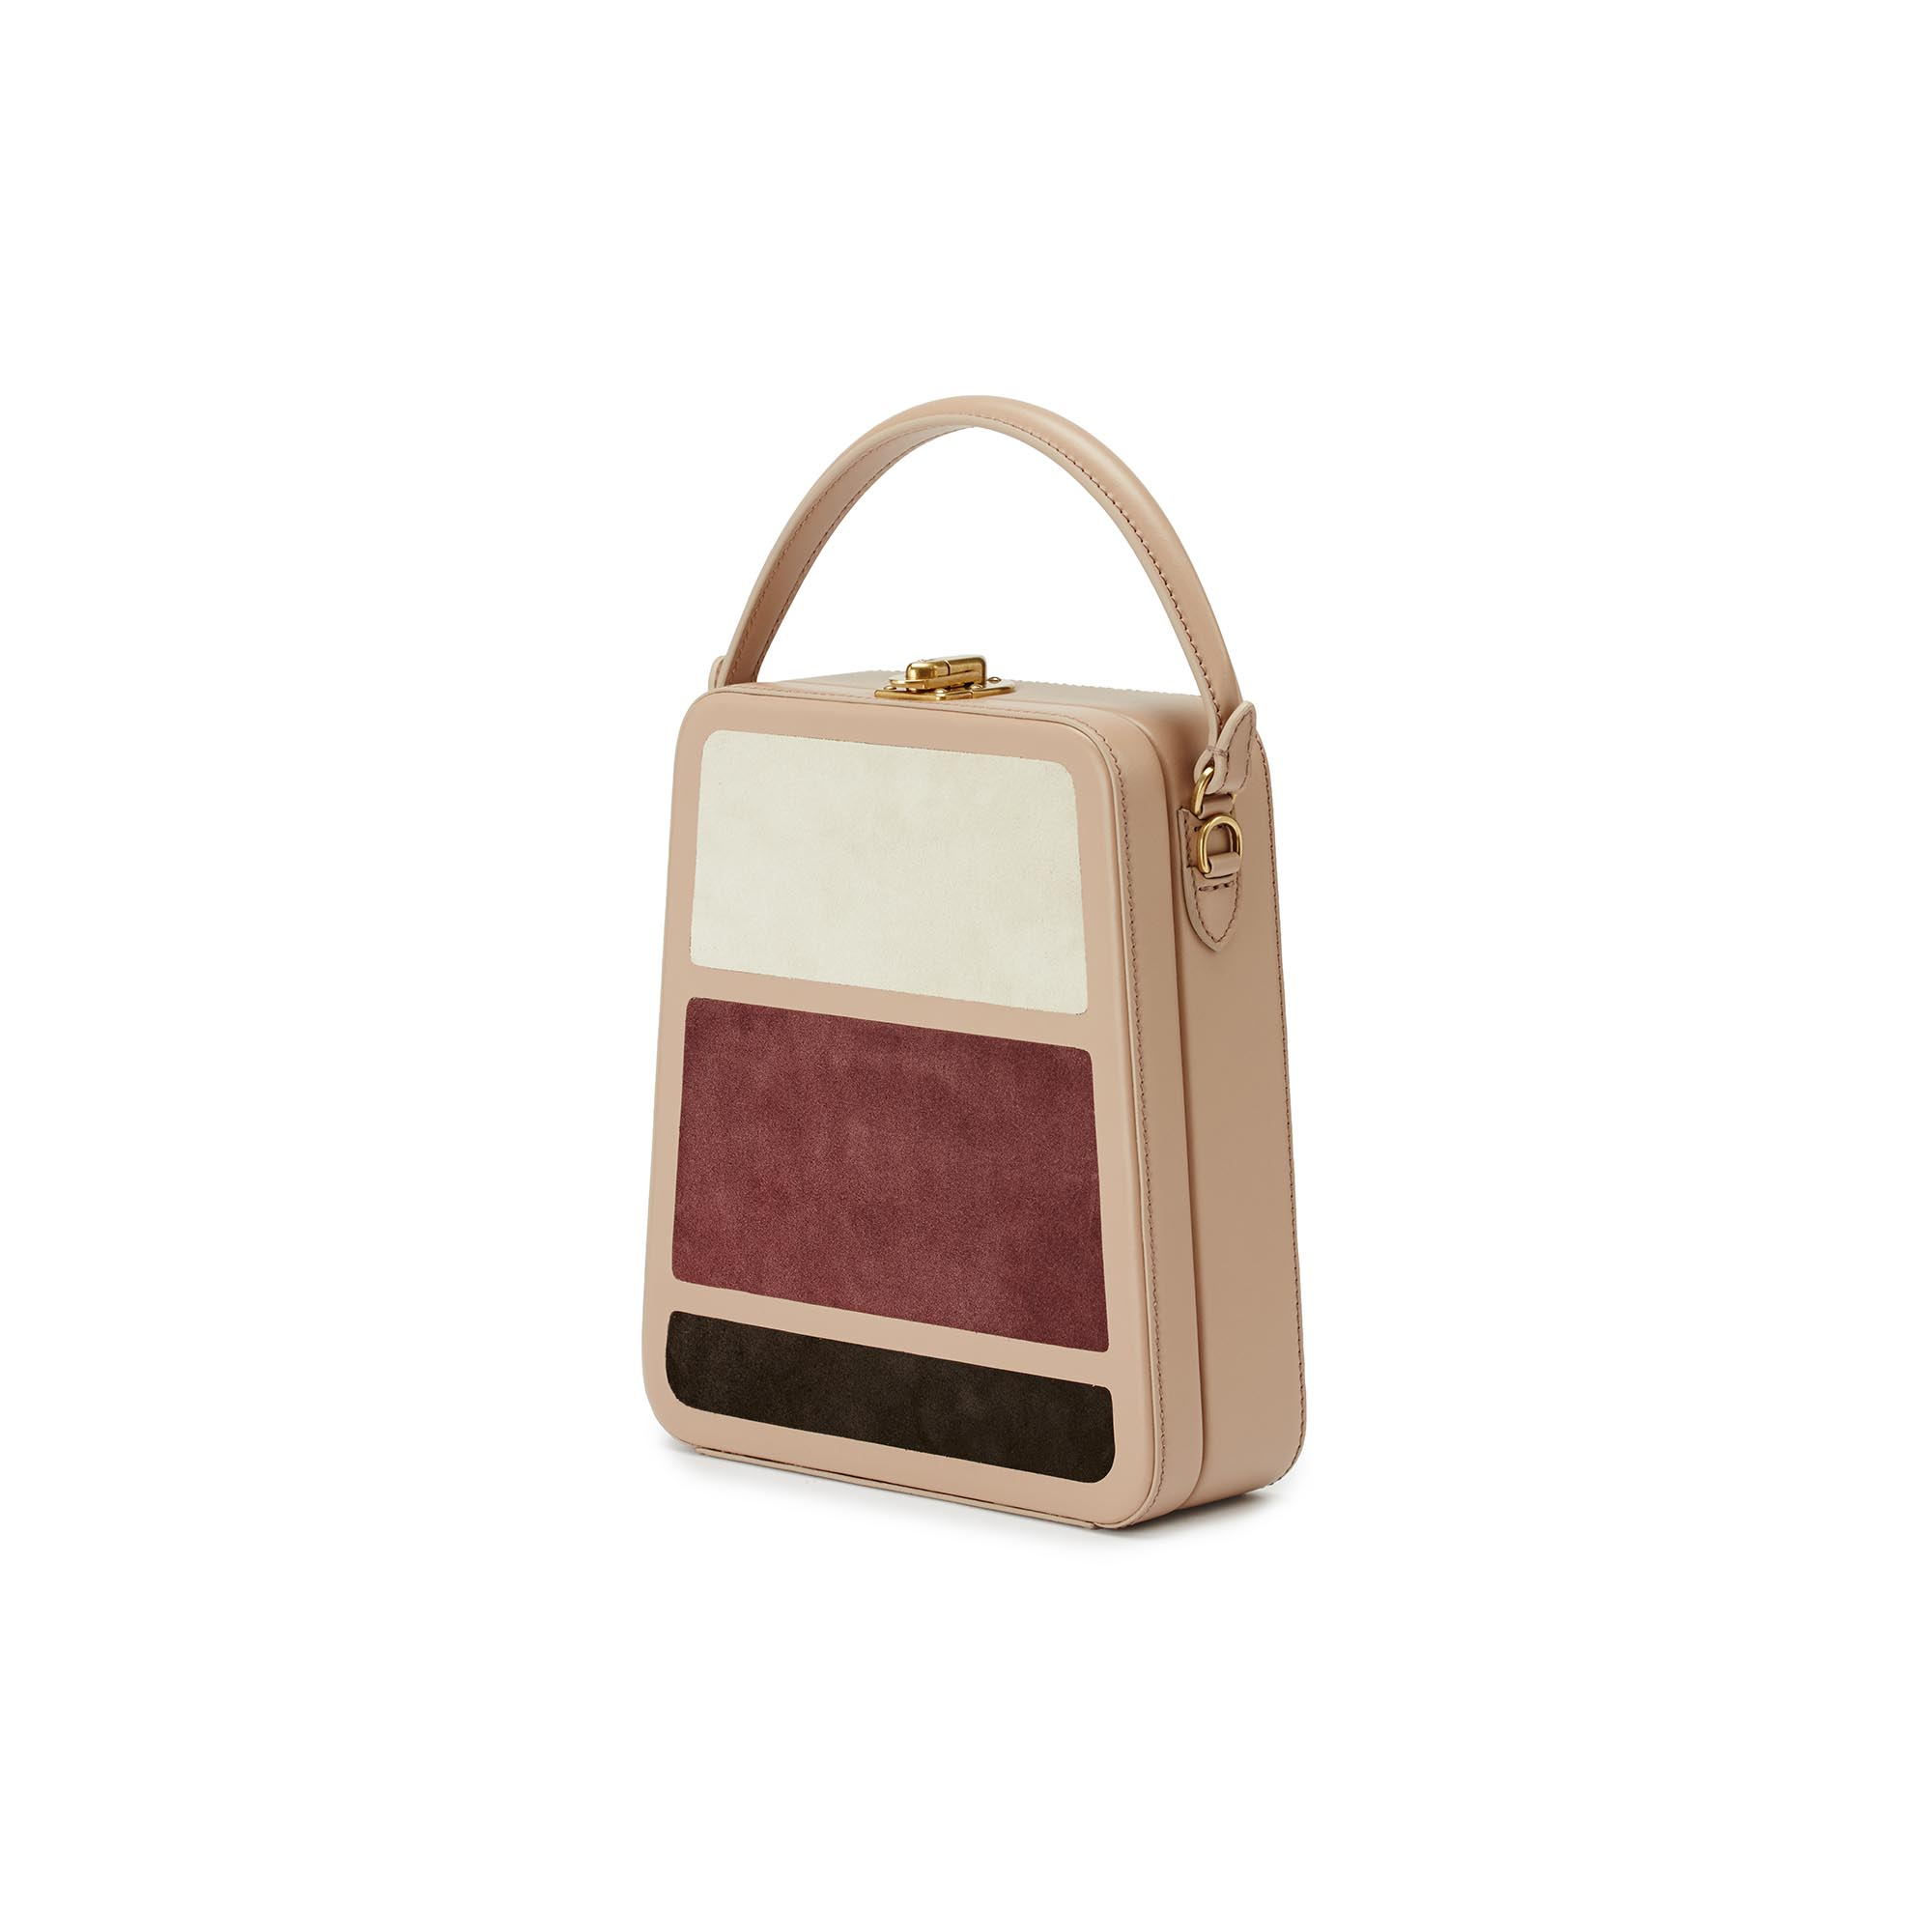 Tall-Bertoncina-rose-ivory-wine-suede-bag-Bertoni-1949_02